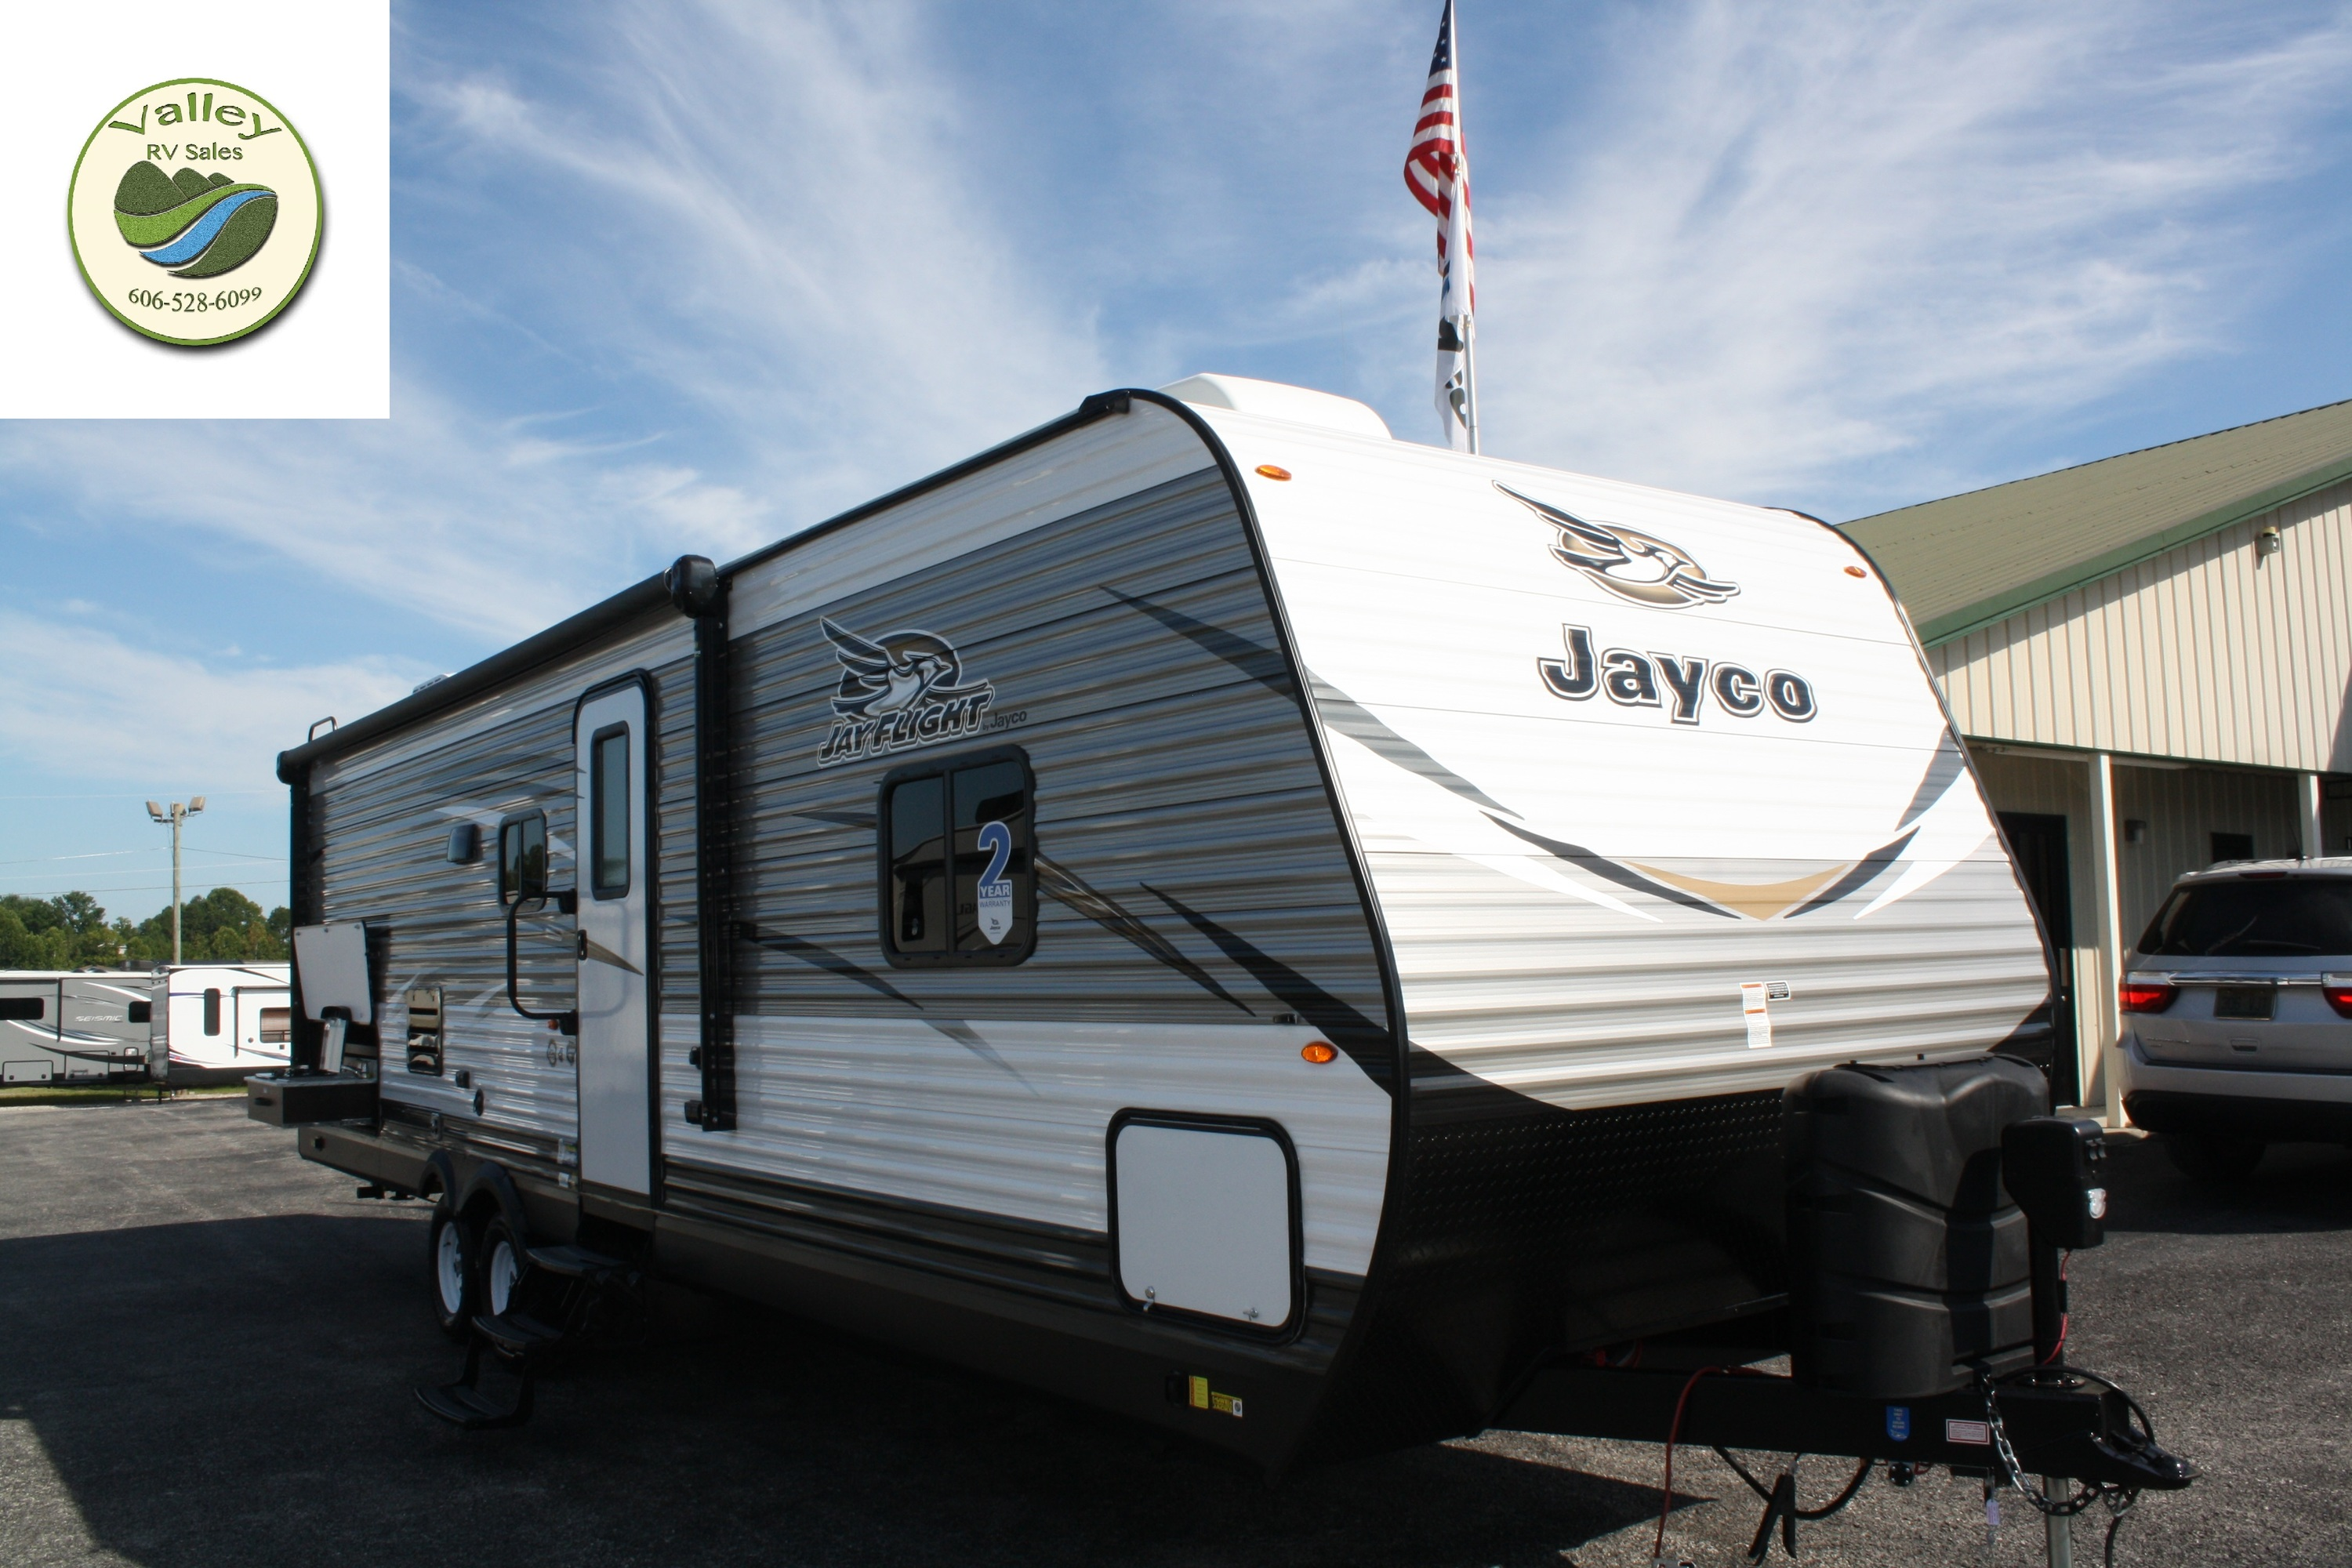 Valley RV Sales - Corbin, KY - Offering New & Used RVs from Jayco